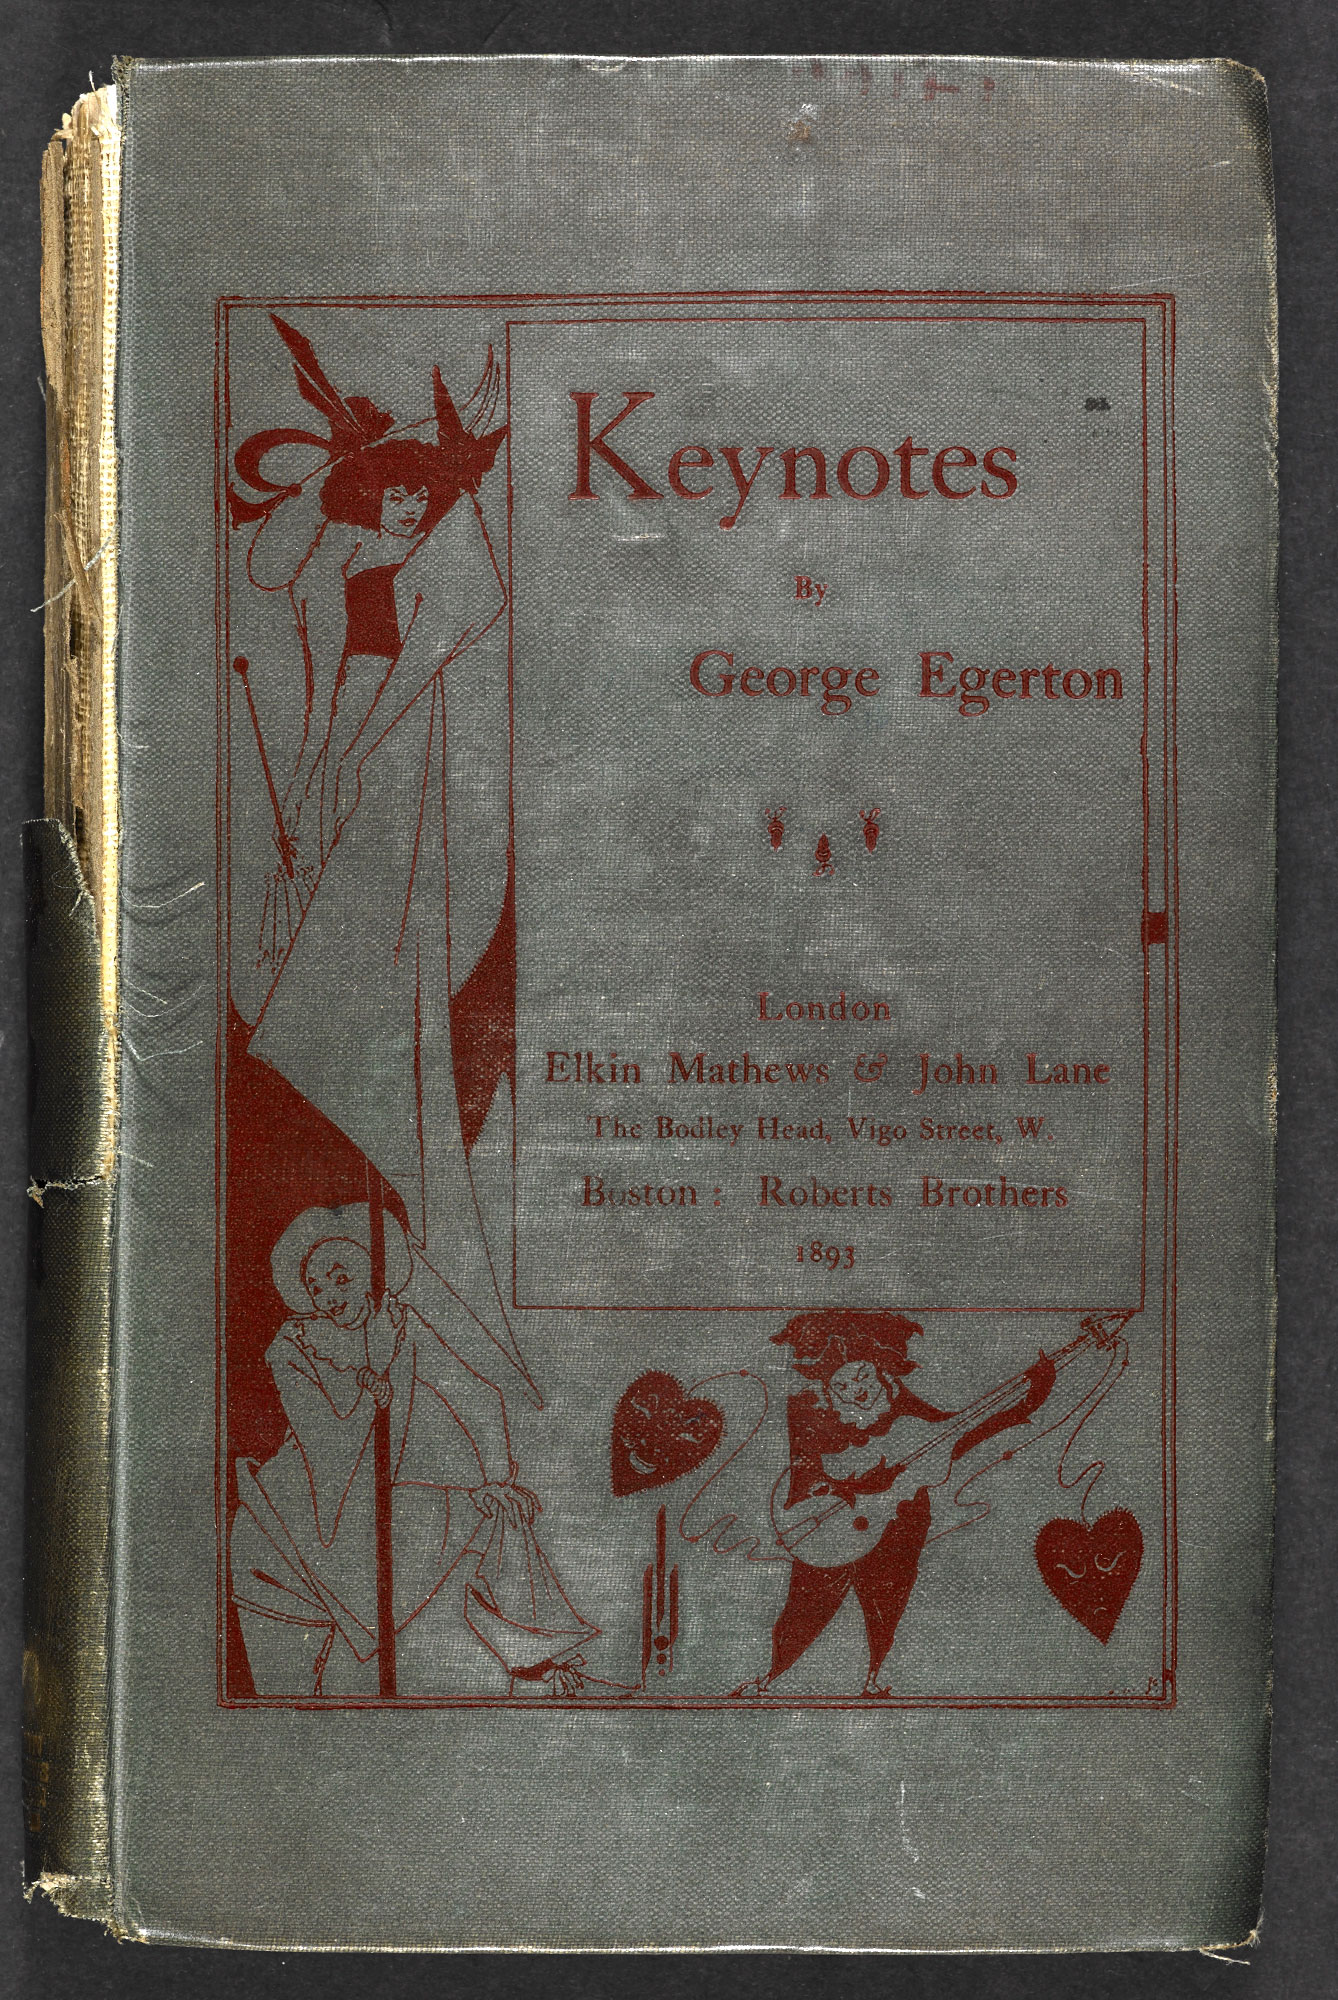 Keynotes, a collection of short stories